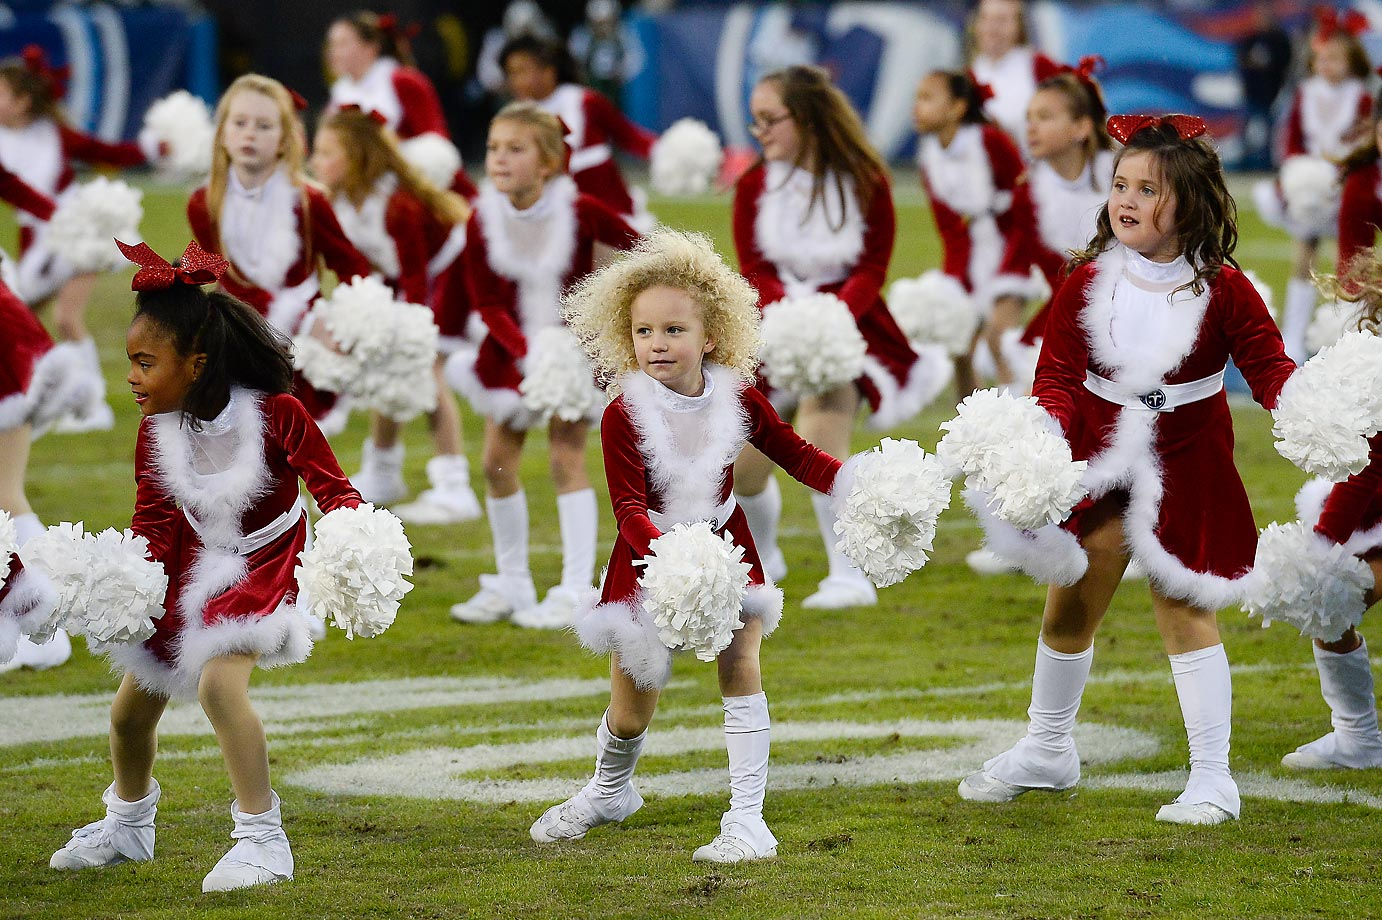 Cheerleaders perform at the game between the Tennessee Titans and the New York Jets.